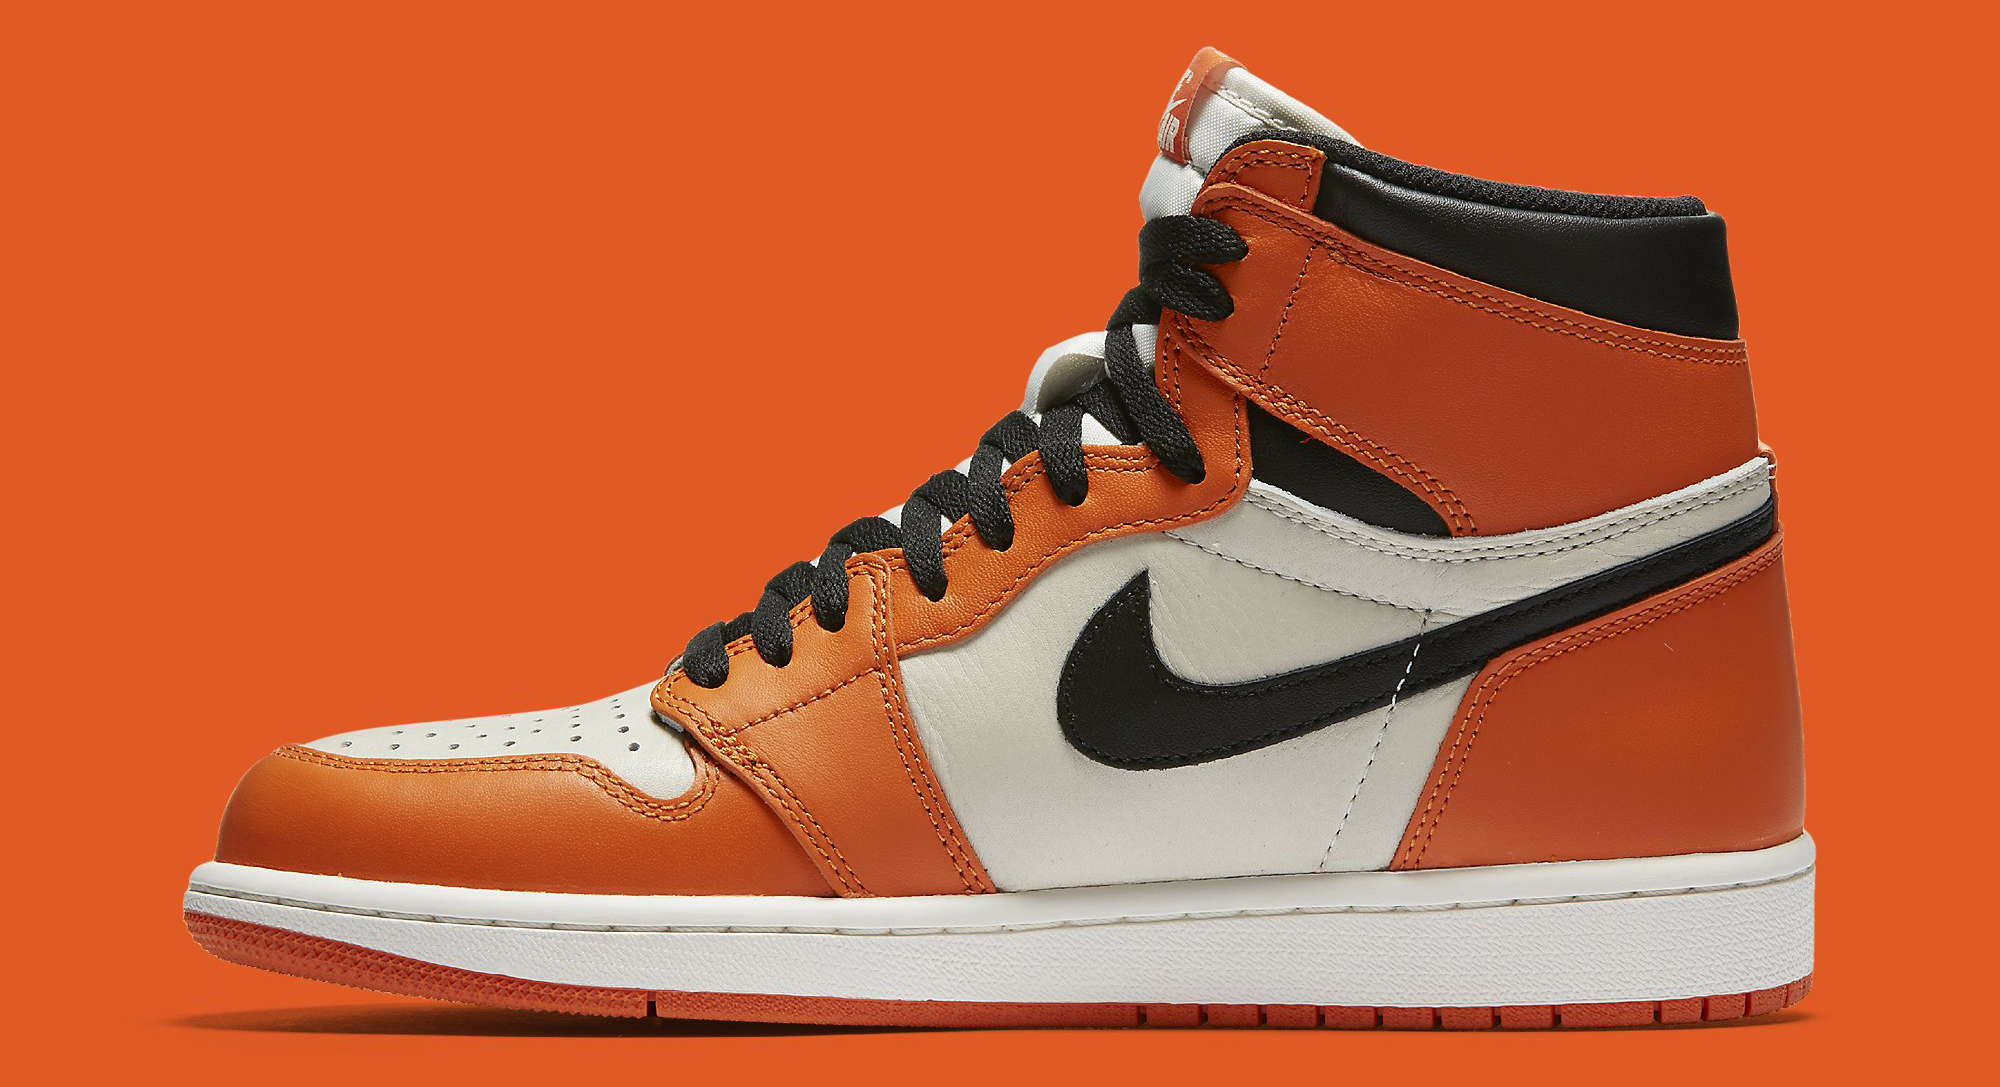 best loved 8084d 906be Image via Nike Air Jordan 1 Shattered Backboard Away 555088-113 Medial